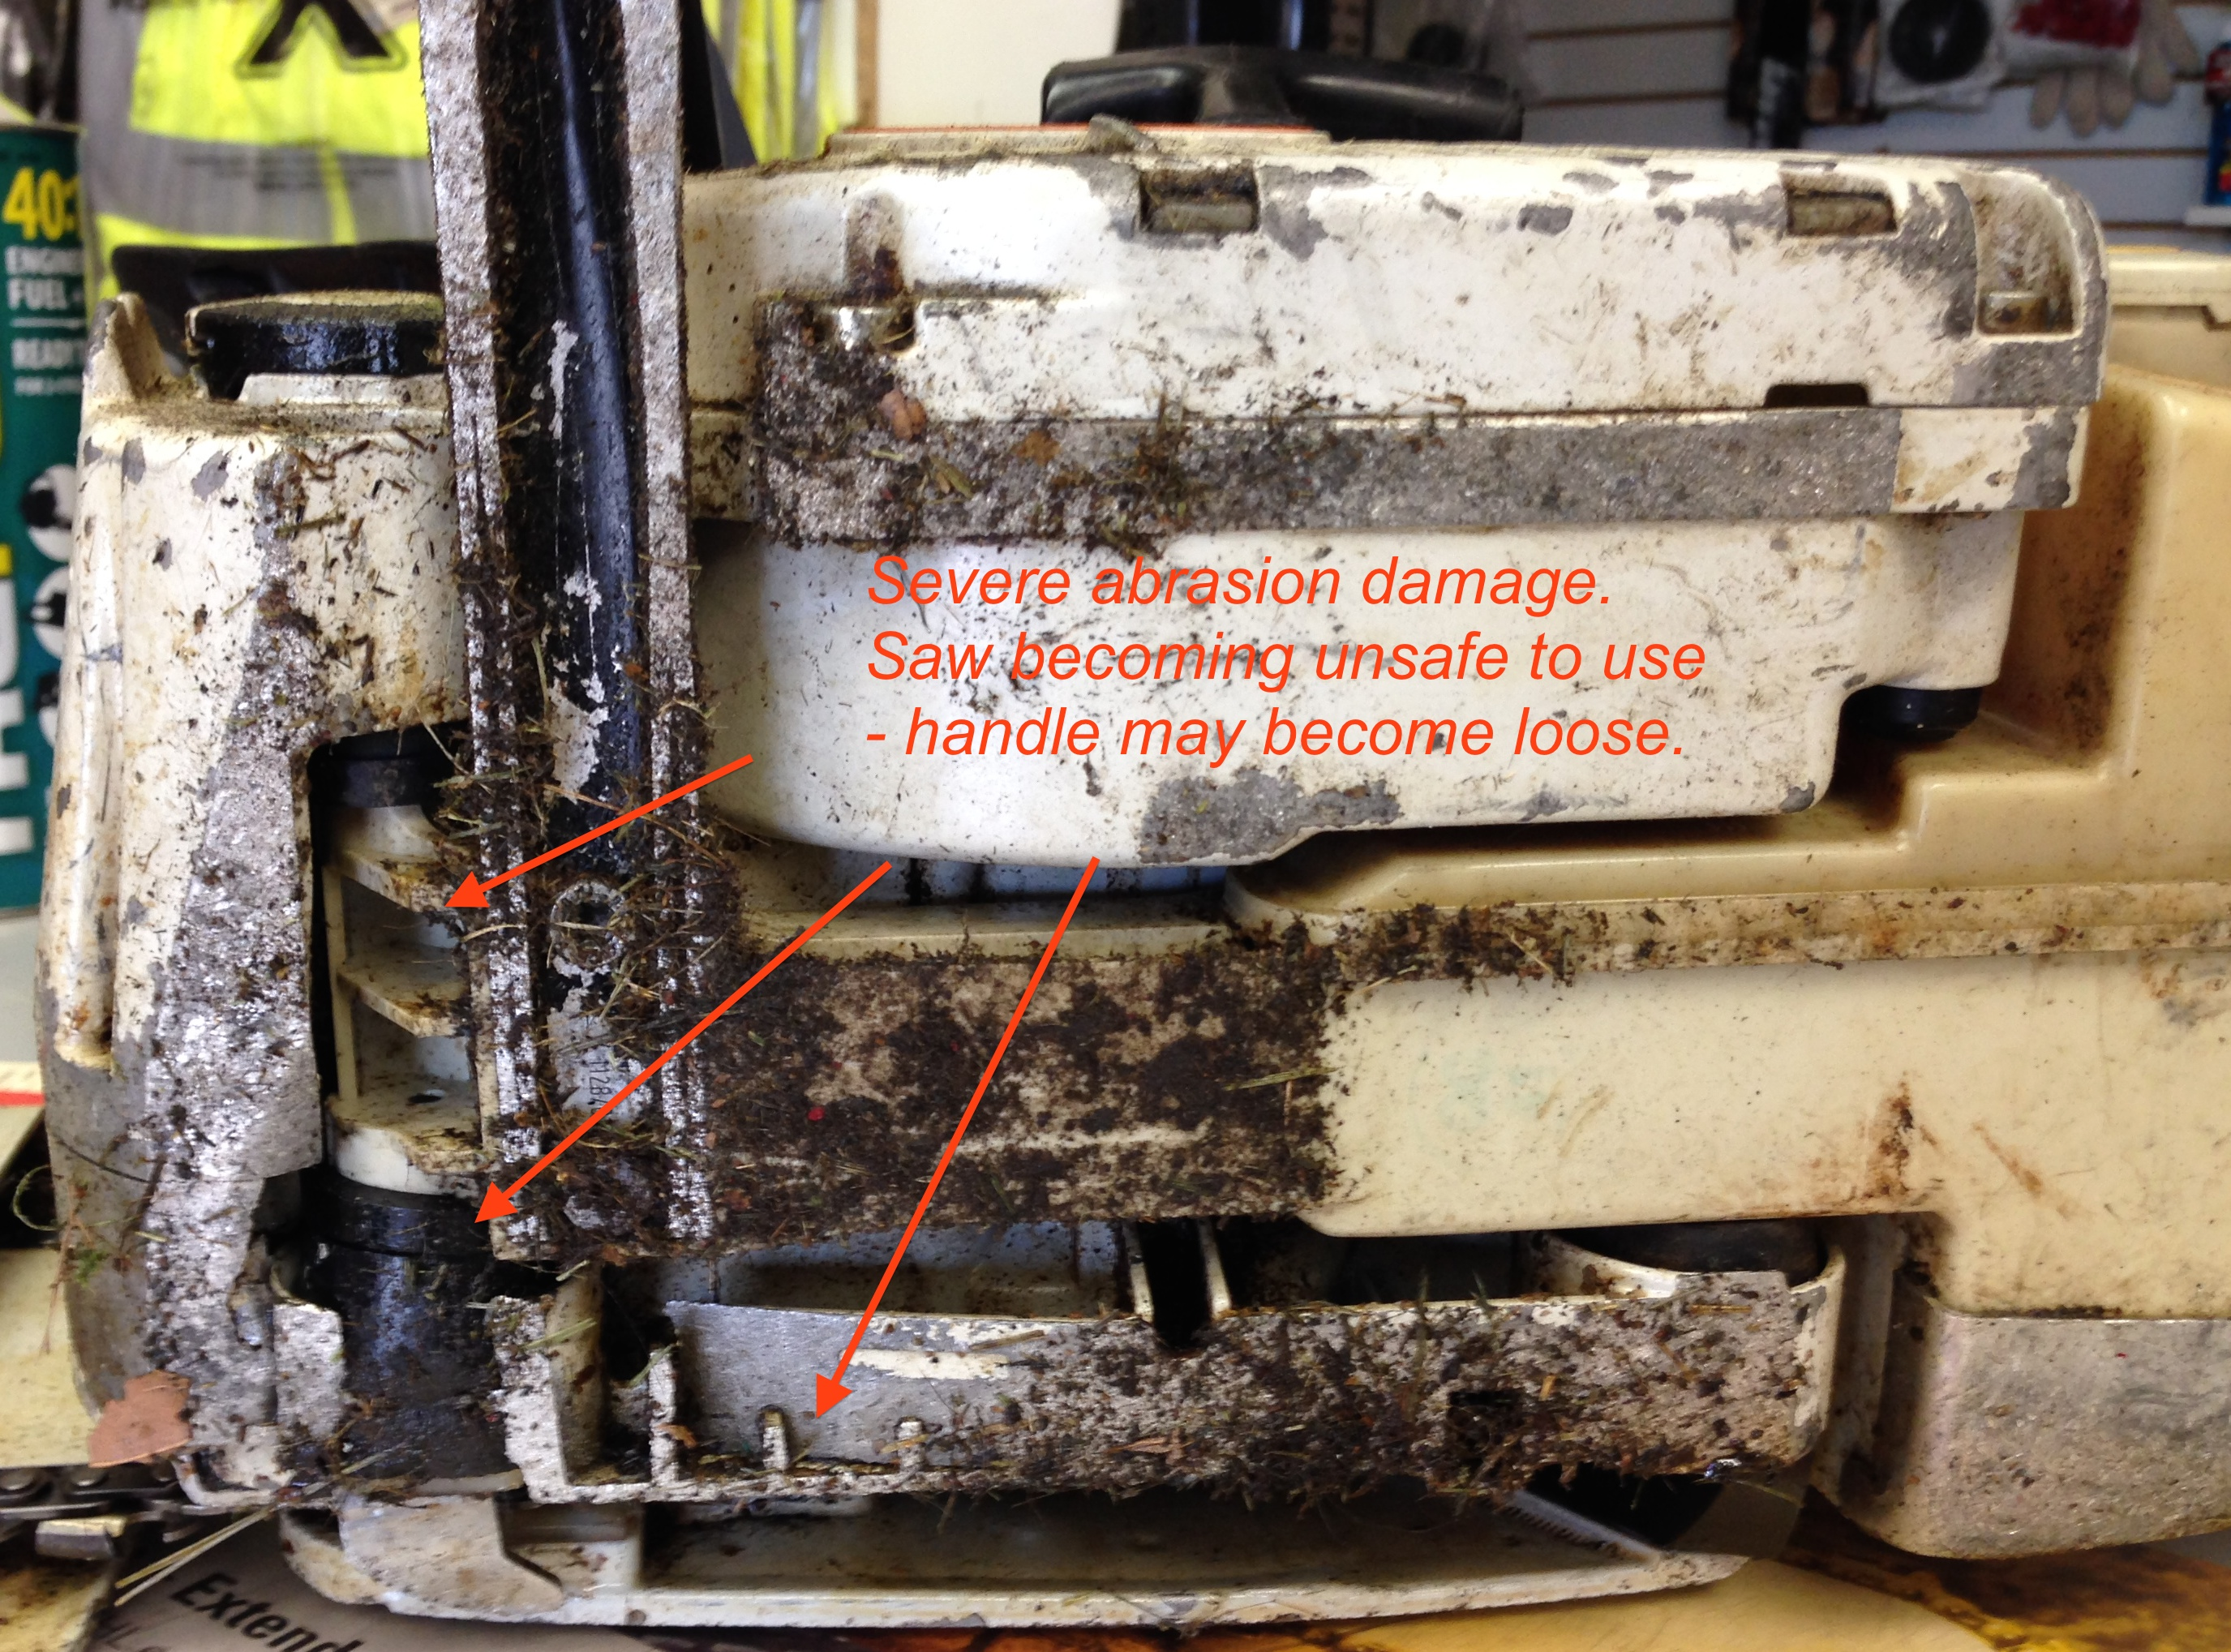 damaged-saw-underneath.jpg